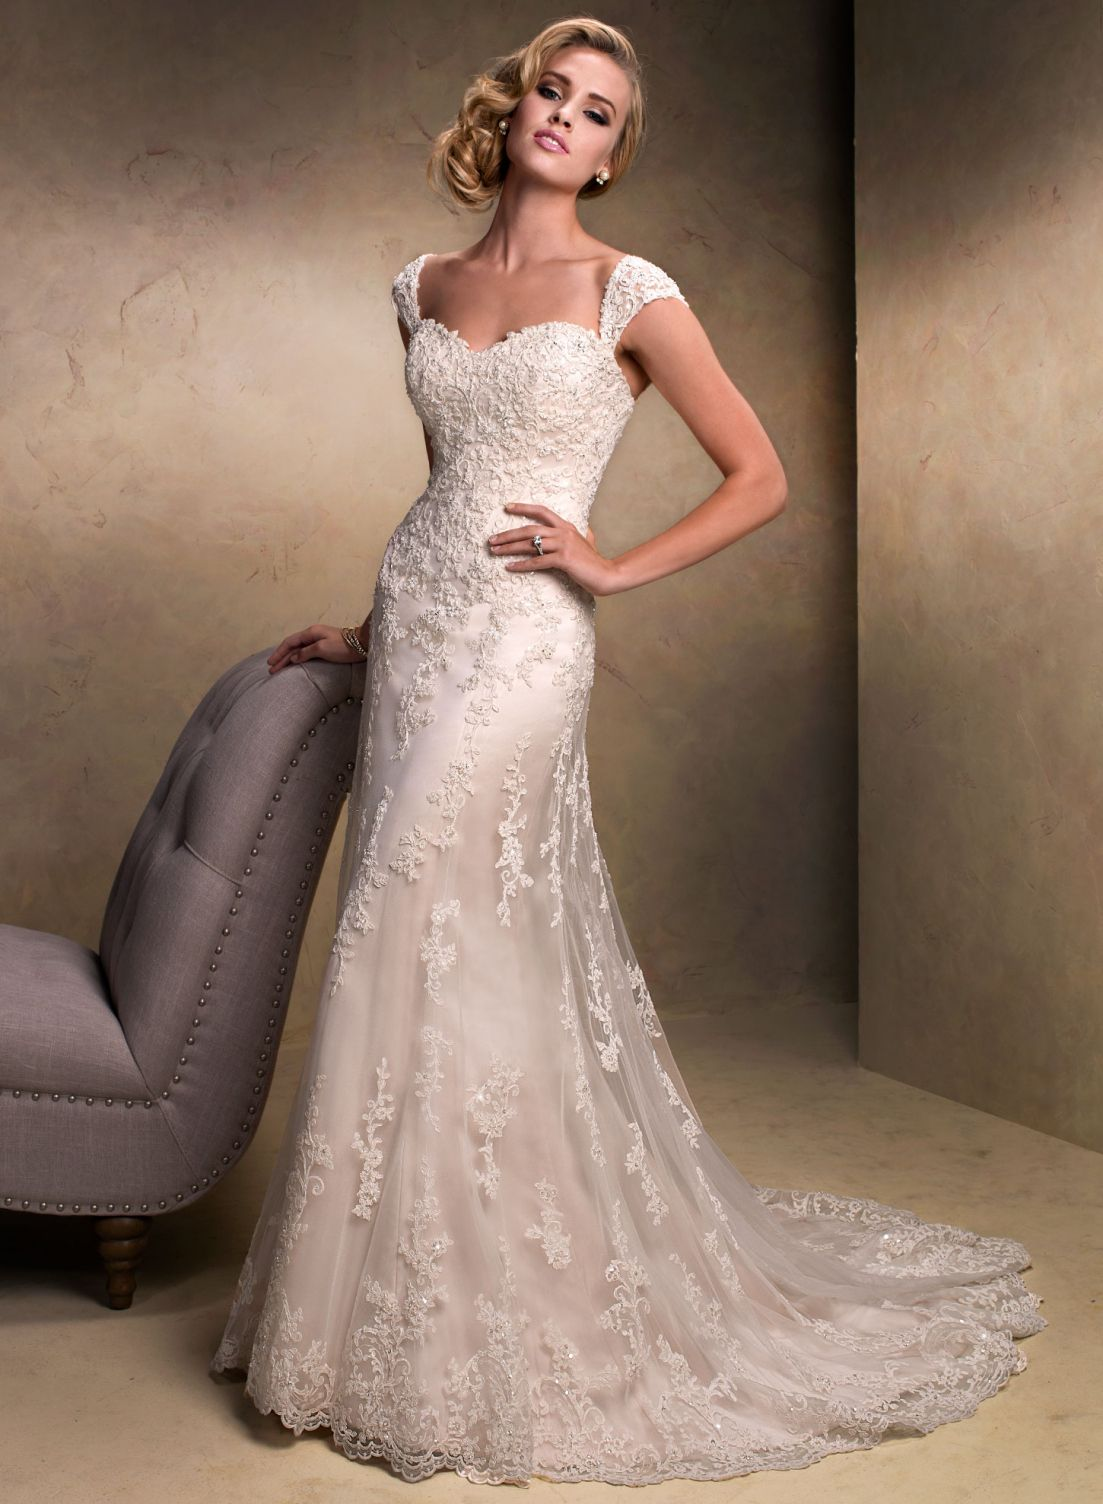 Wedding Dresses atlanta Ga - Dressy Dresses for Weddings Check more ...